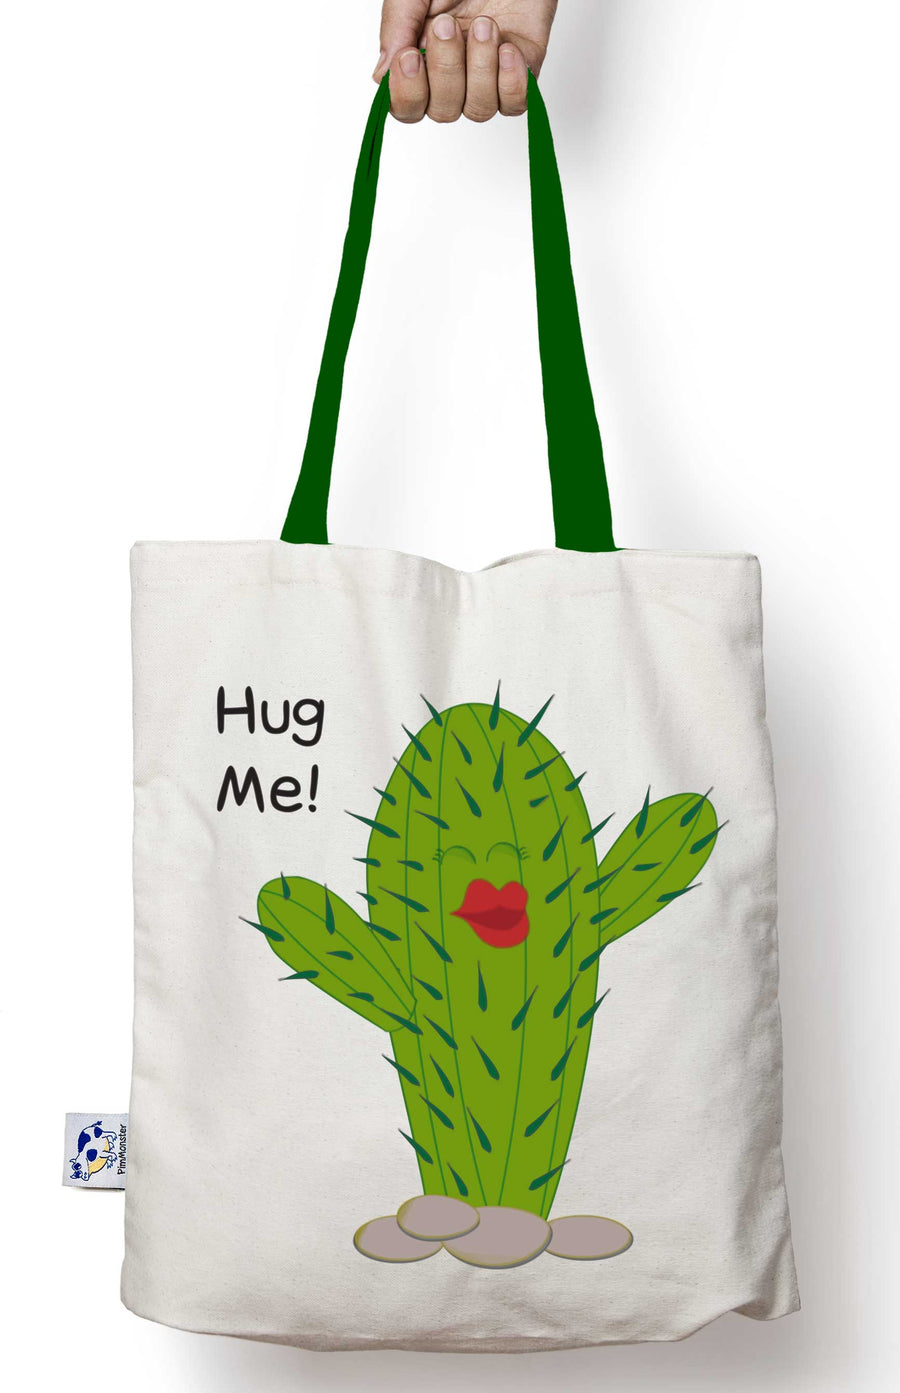 Hug Me! tote bag - Pimmonster